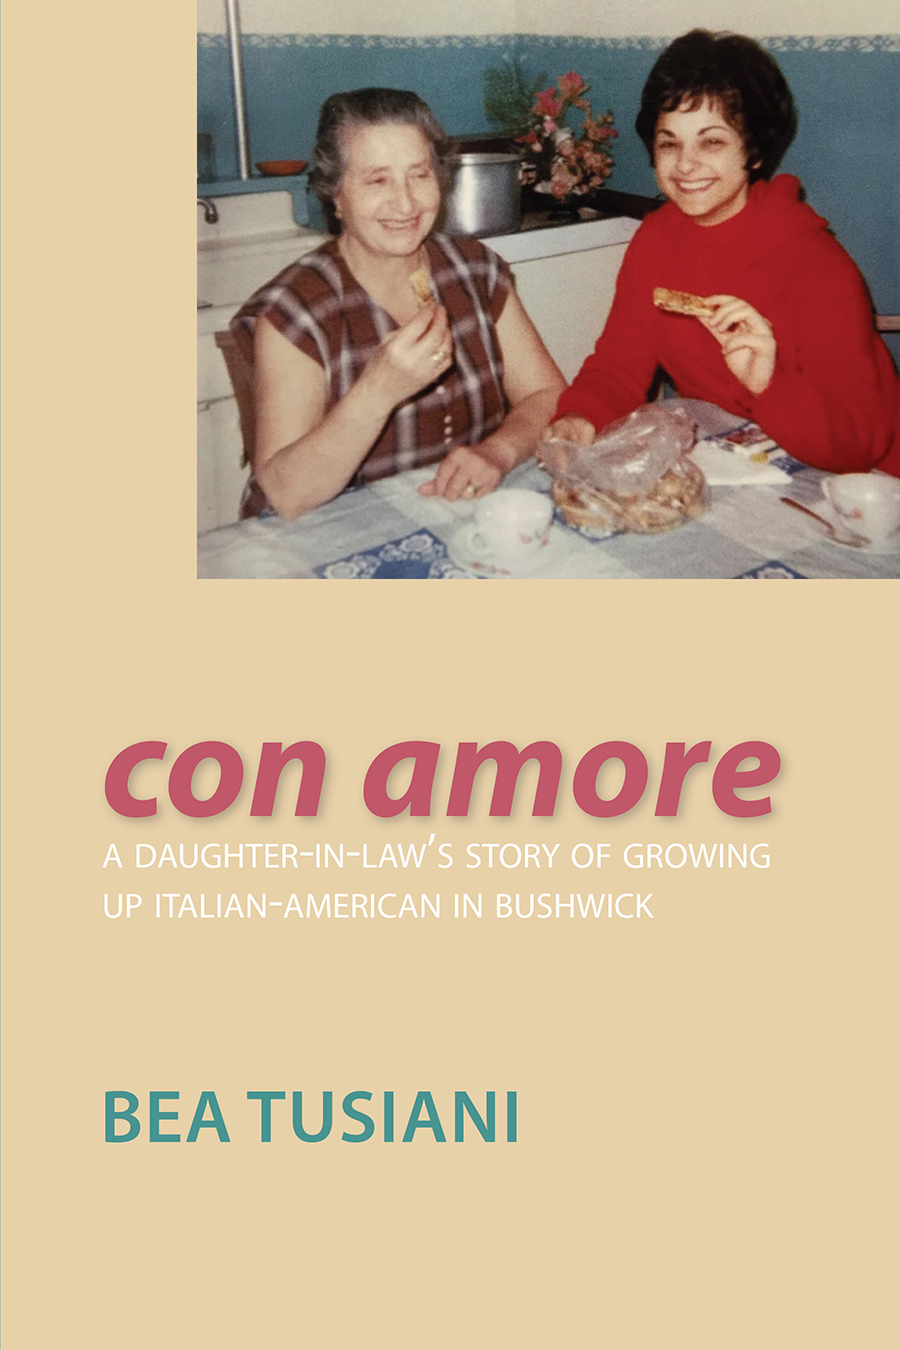 CON AMORE: A DAUGHTER-IN-LAW'S STORY OF GROWING UP ITALIAN-AMERICAN IN BUSHWICK